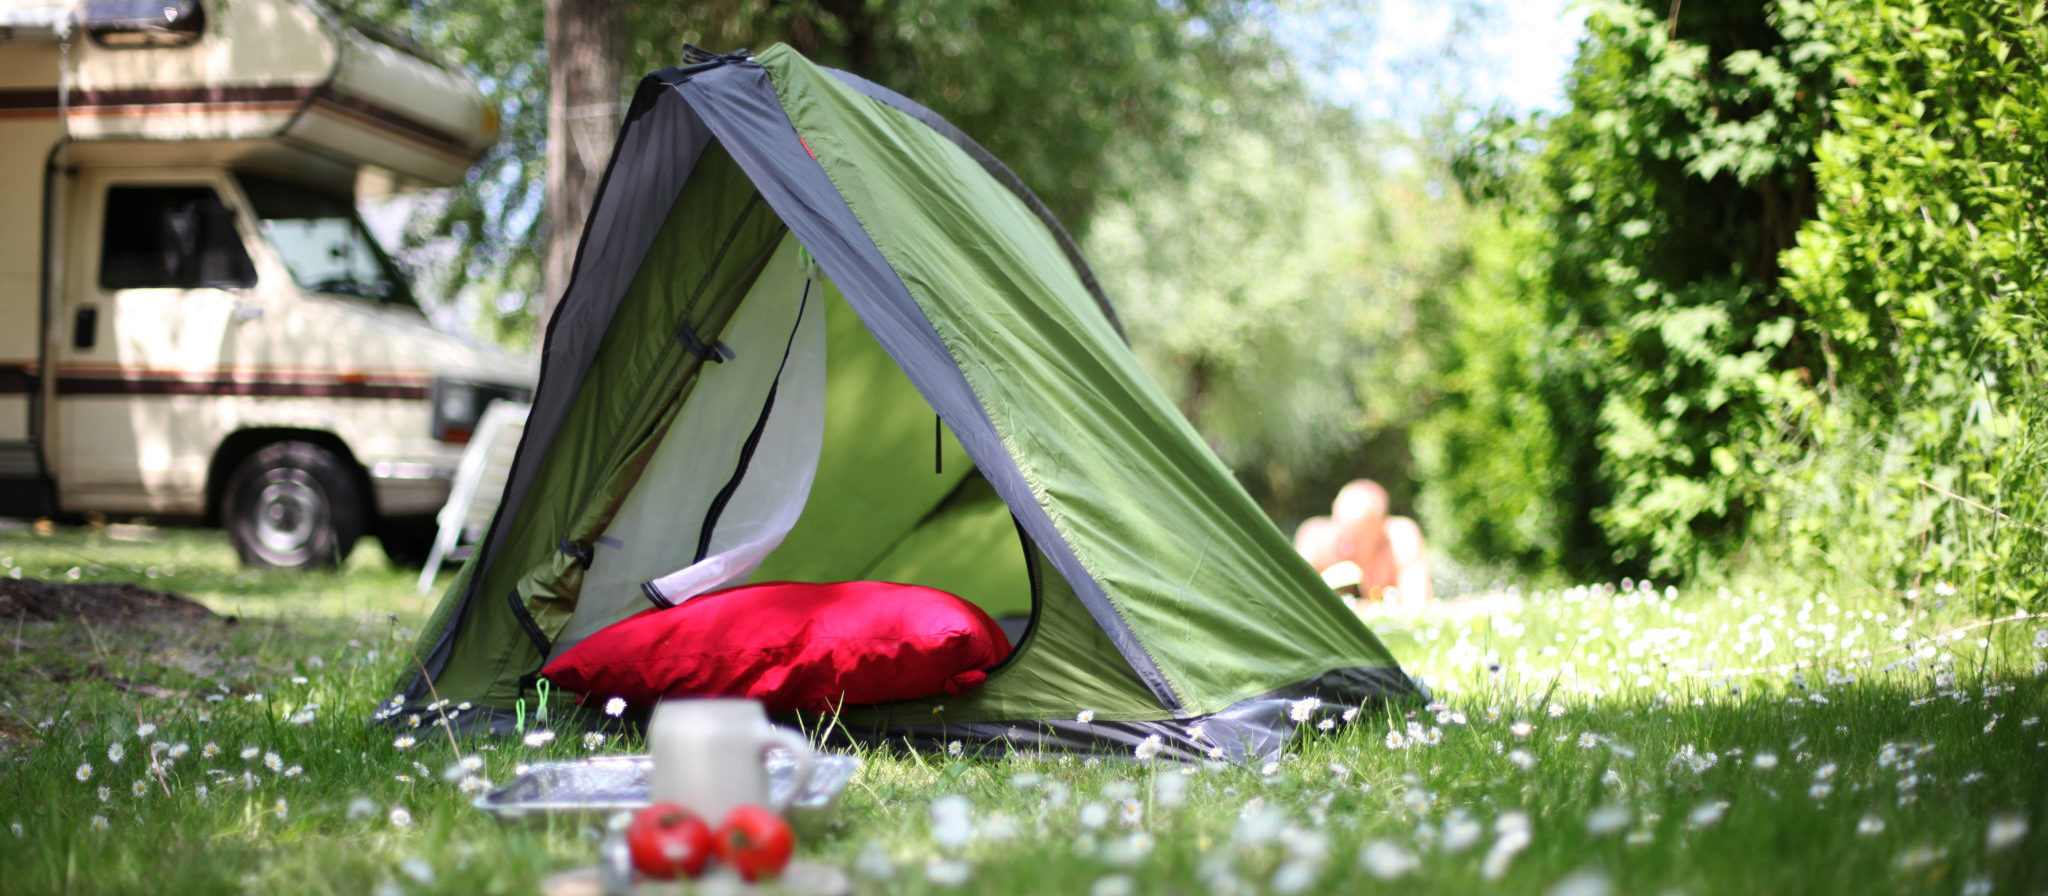 Take stock of everything you know you will need for your camping trip. There is nothing worse than arriving to your destination only to realize you missed something important!